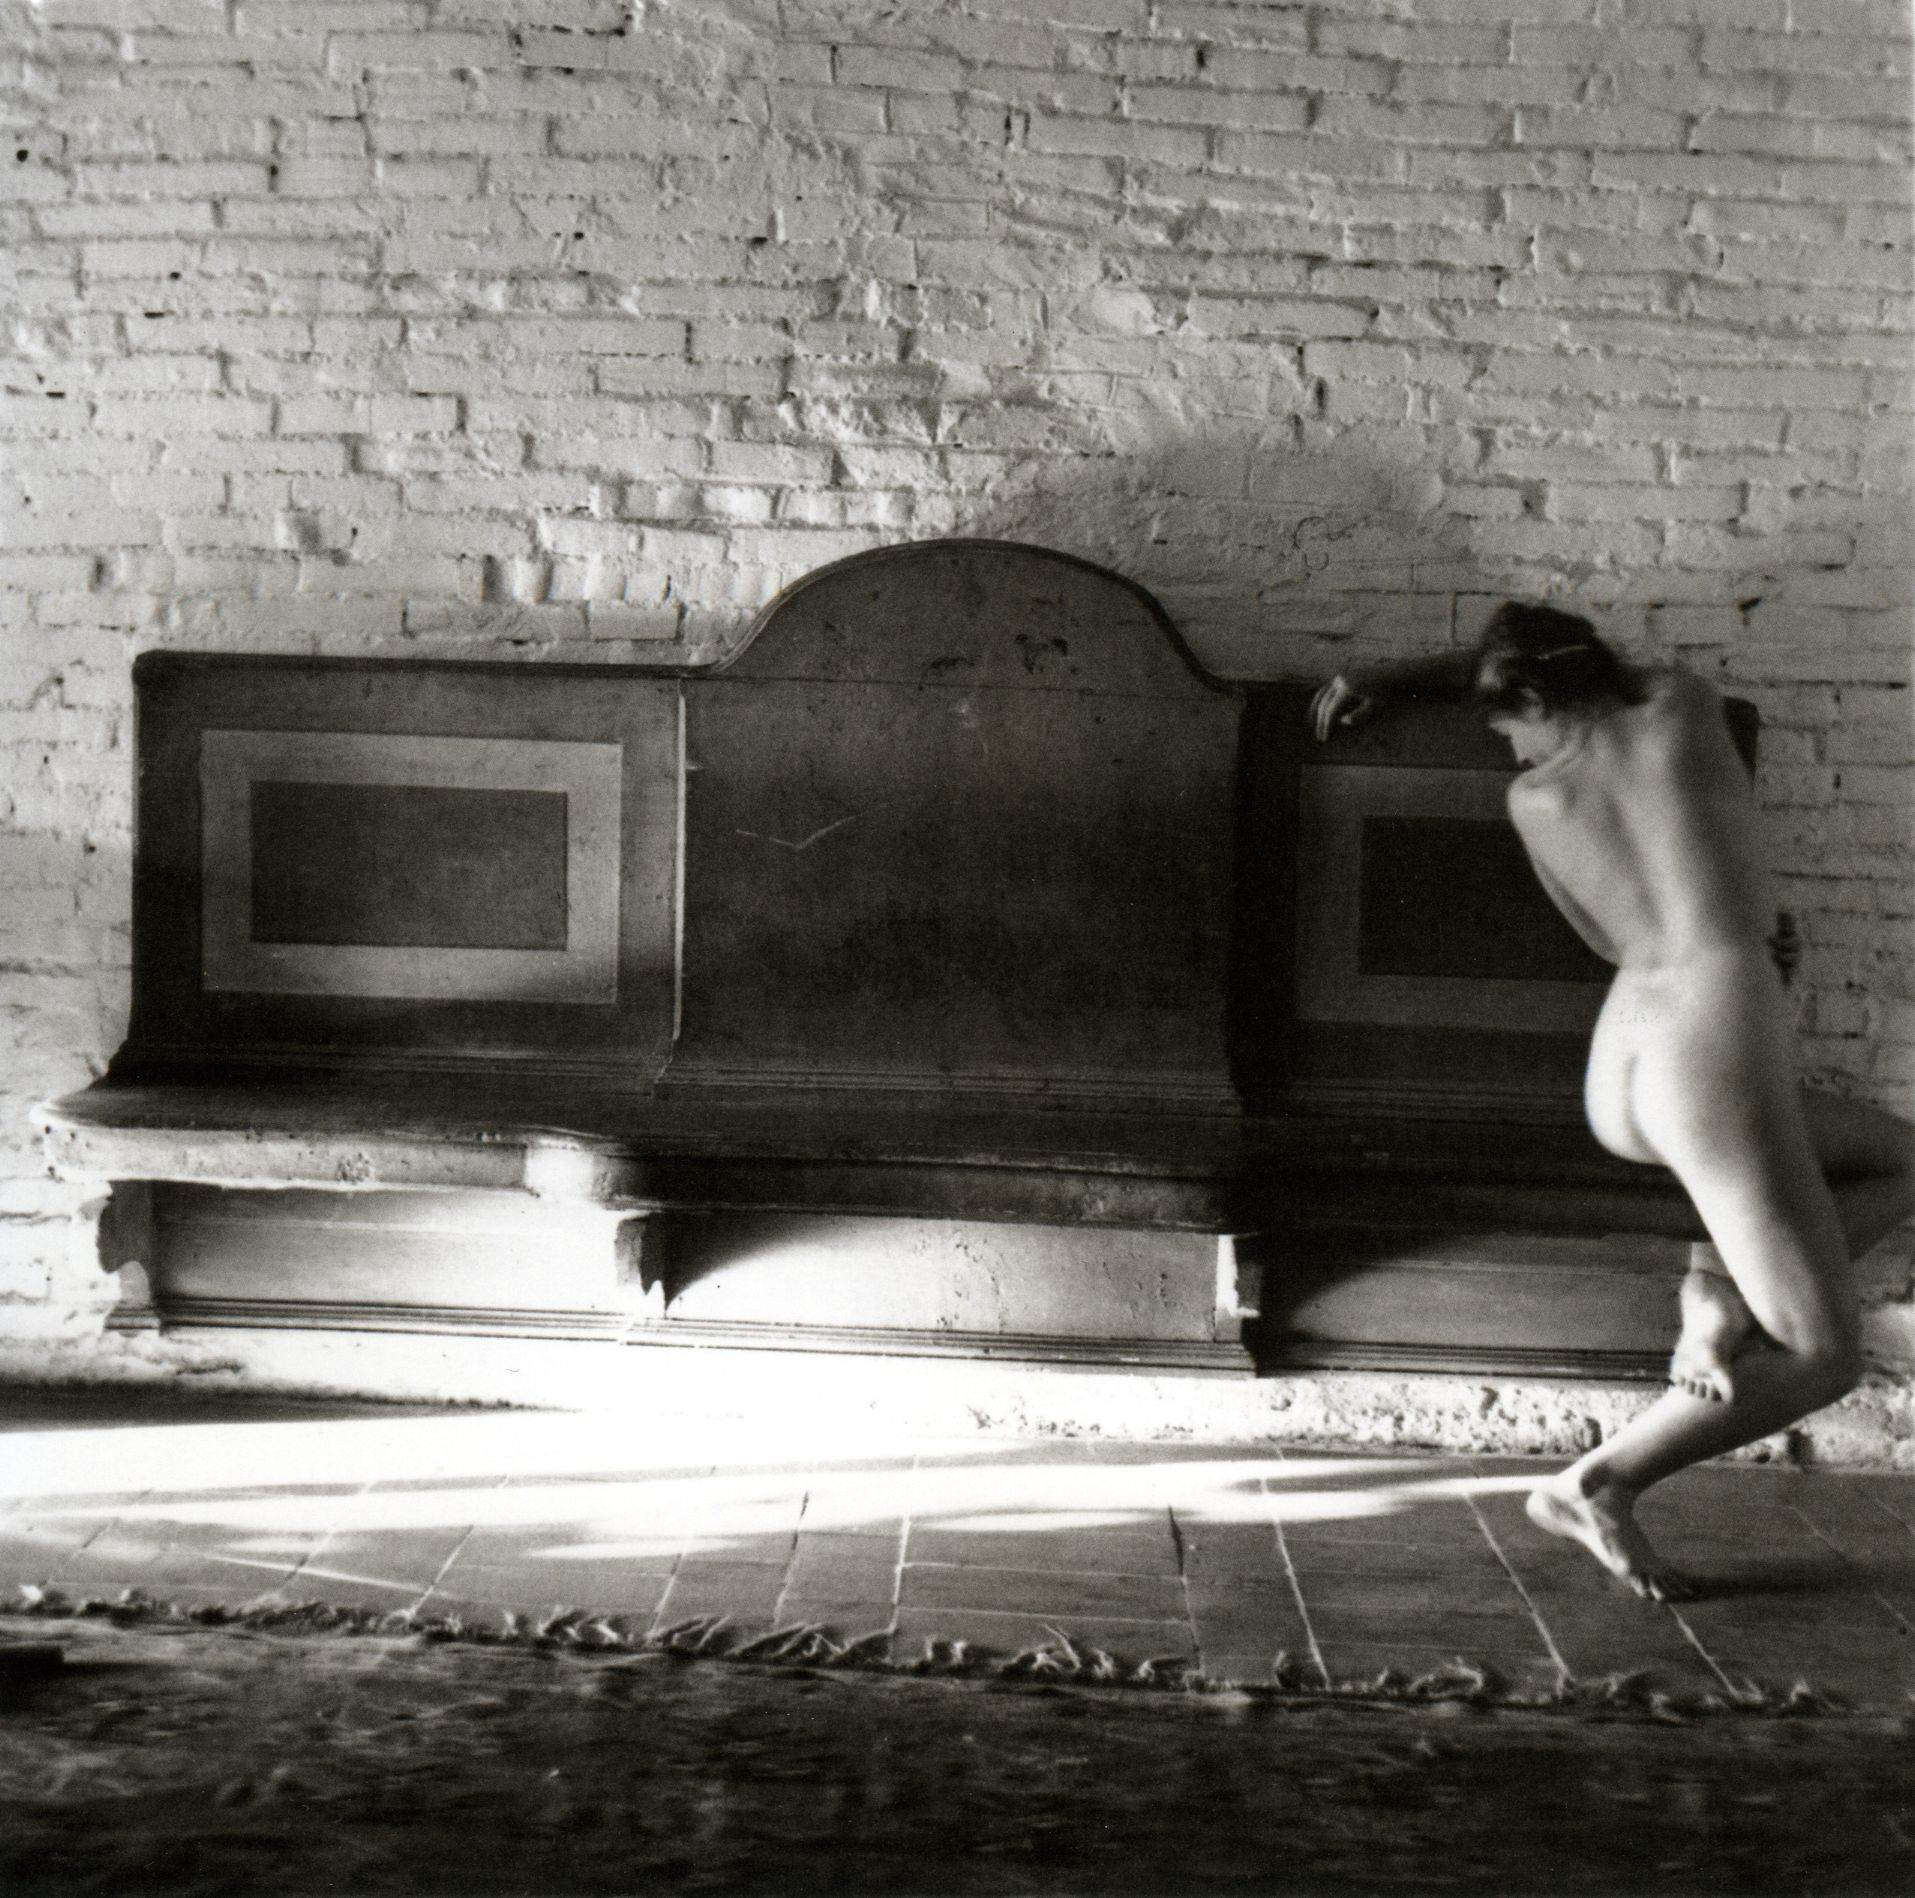 Francesca Woodman - Similex. Untitled - Antella, 1977-78 - courtesy Galleria Massimo Minini, Brescia